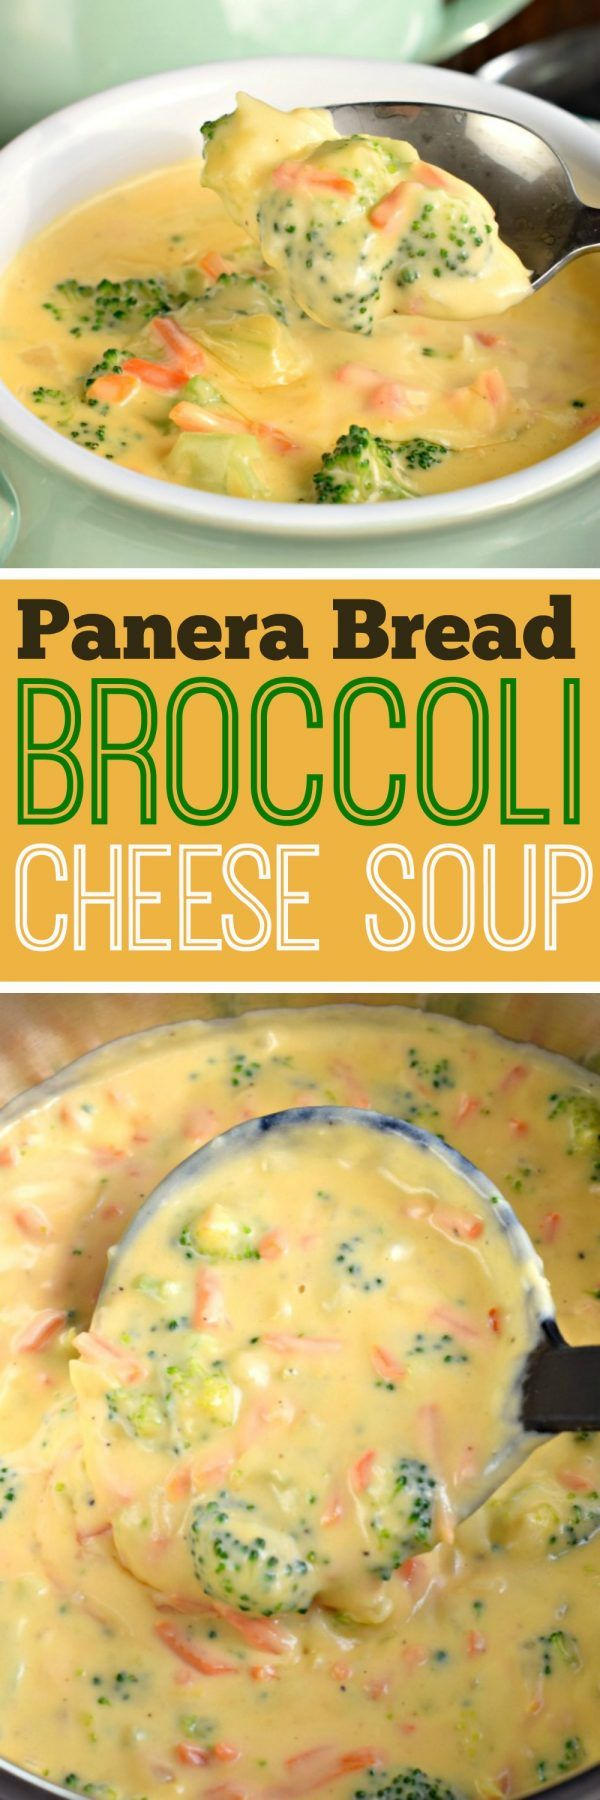 Shugary Sweets Copycat Panera Broccoli Cheese Soup - Shugary Sweets